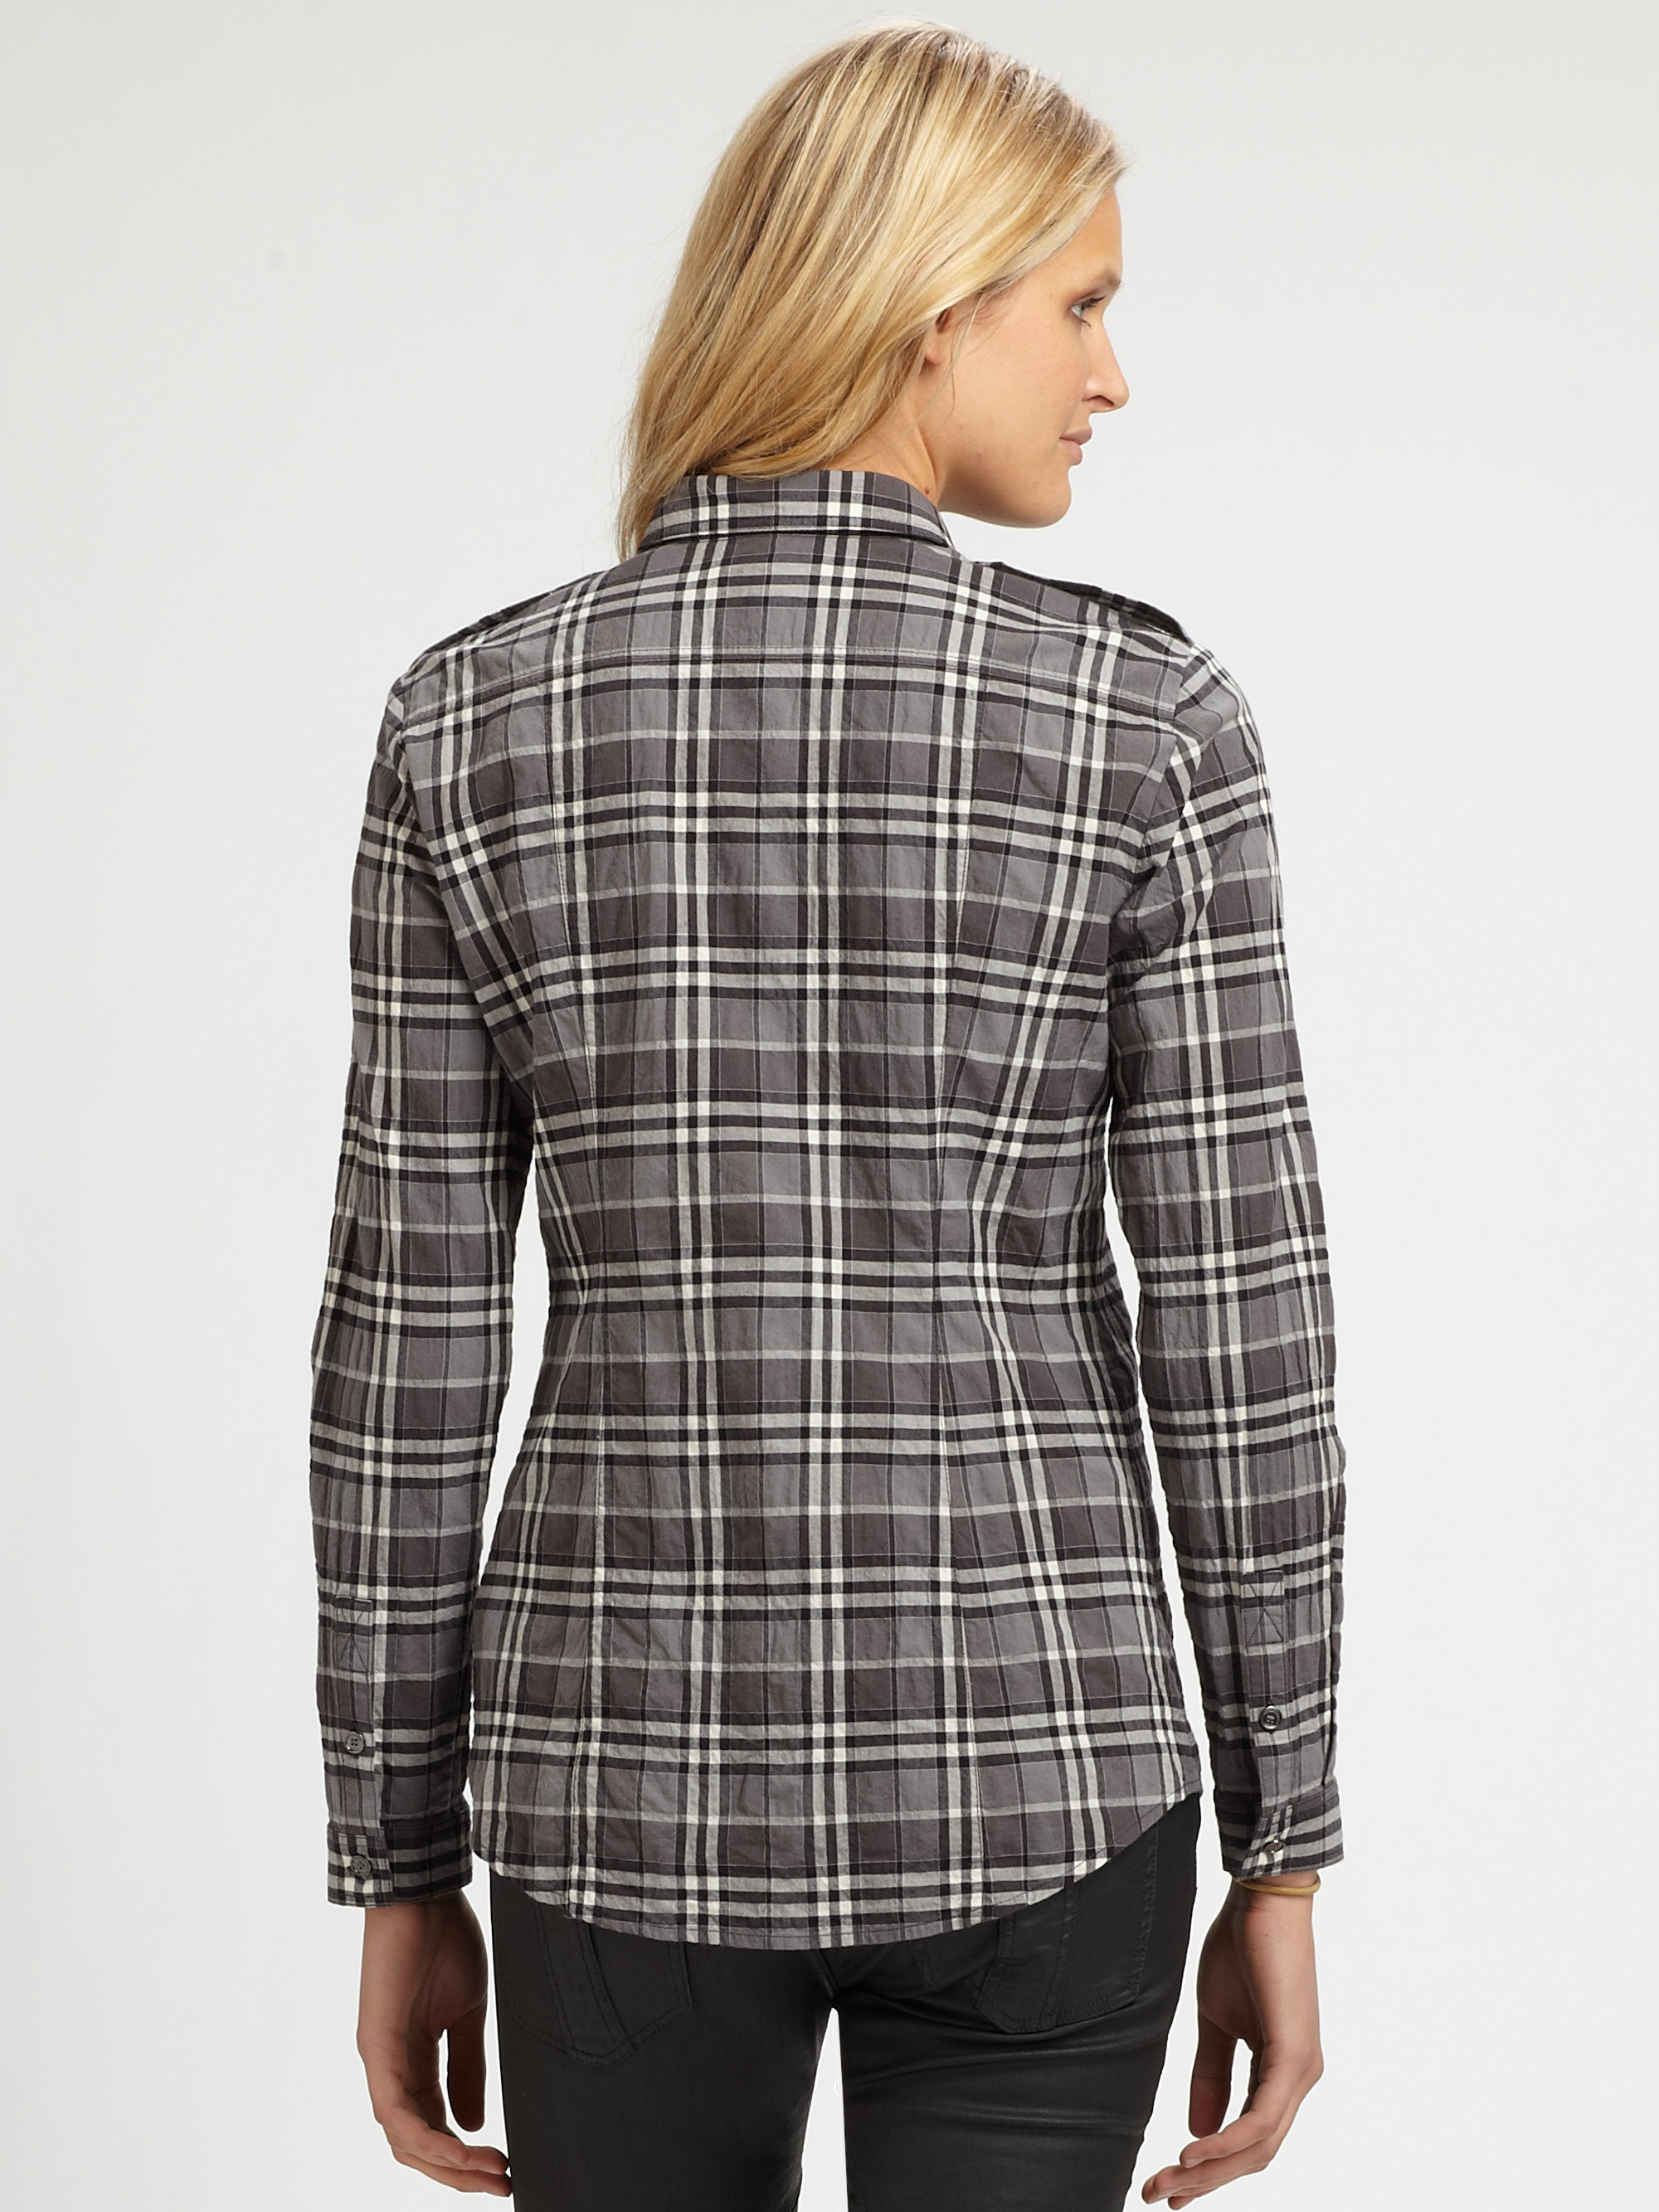 Burberry brit plaid button down shirt in gray charcoal for Burberry brit checked shirt